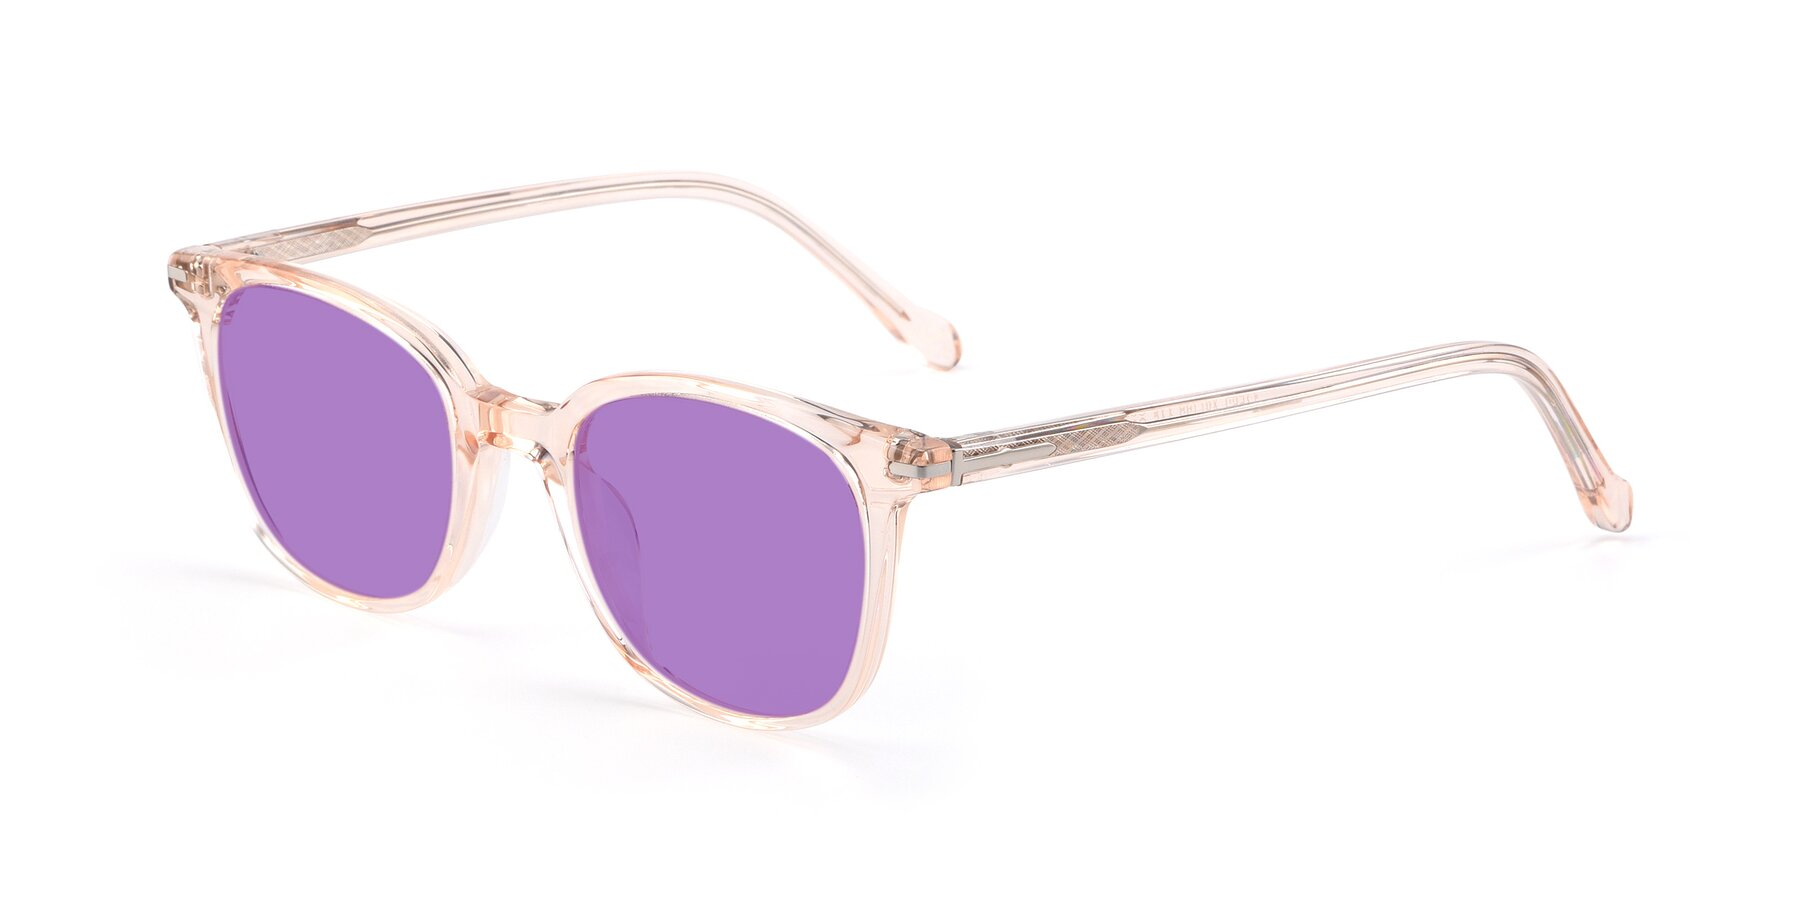 Angle of 17562 in Transparent Pink with Medium Purple Tinted Lenses